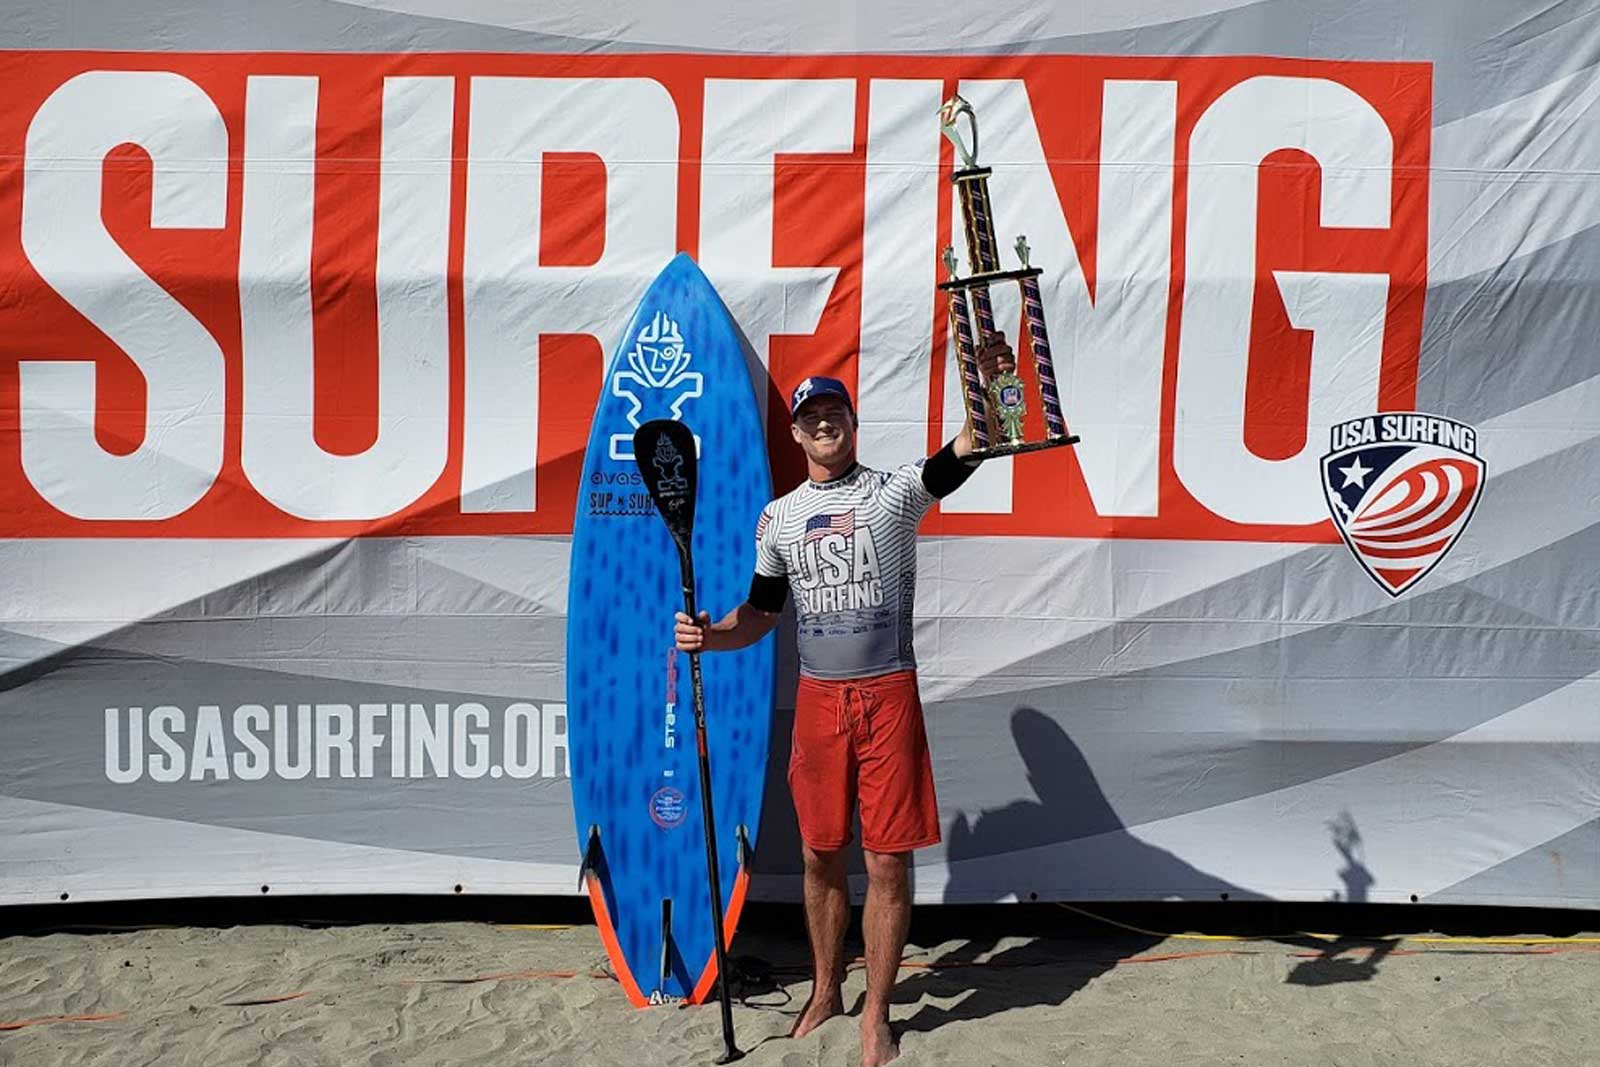 starboard-sup-sean-poynter-2018-USA-SUP-Surfing-Championships-Oceanside-Harbor-podium-2